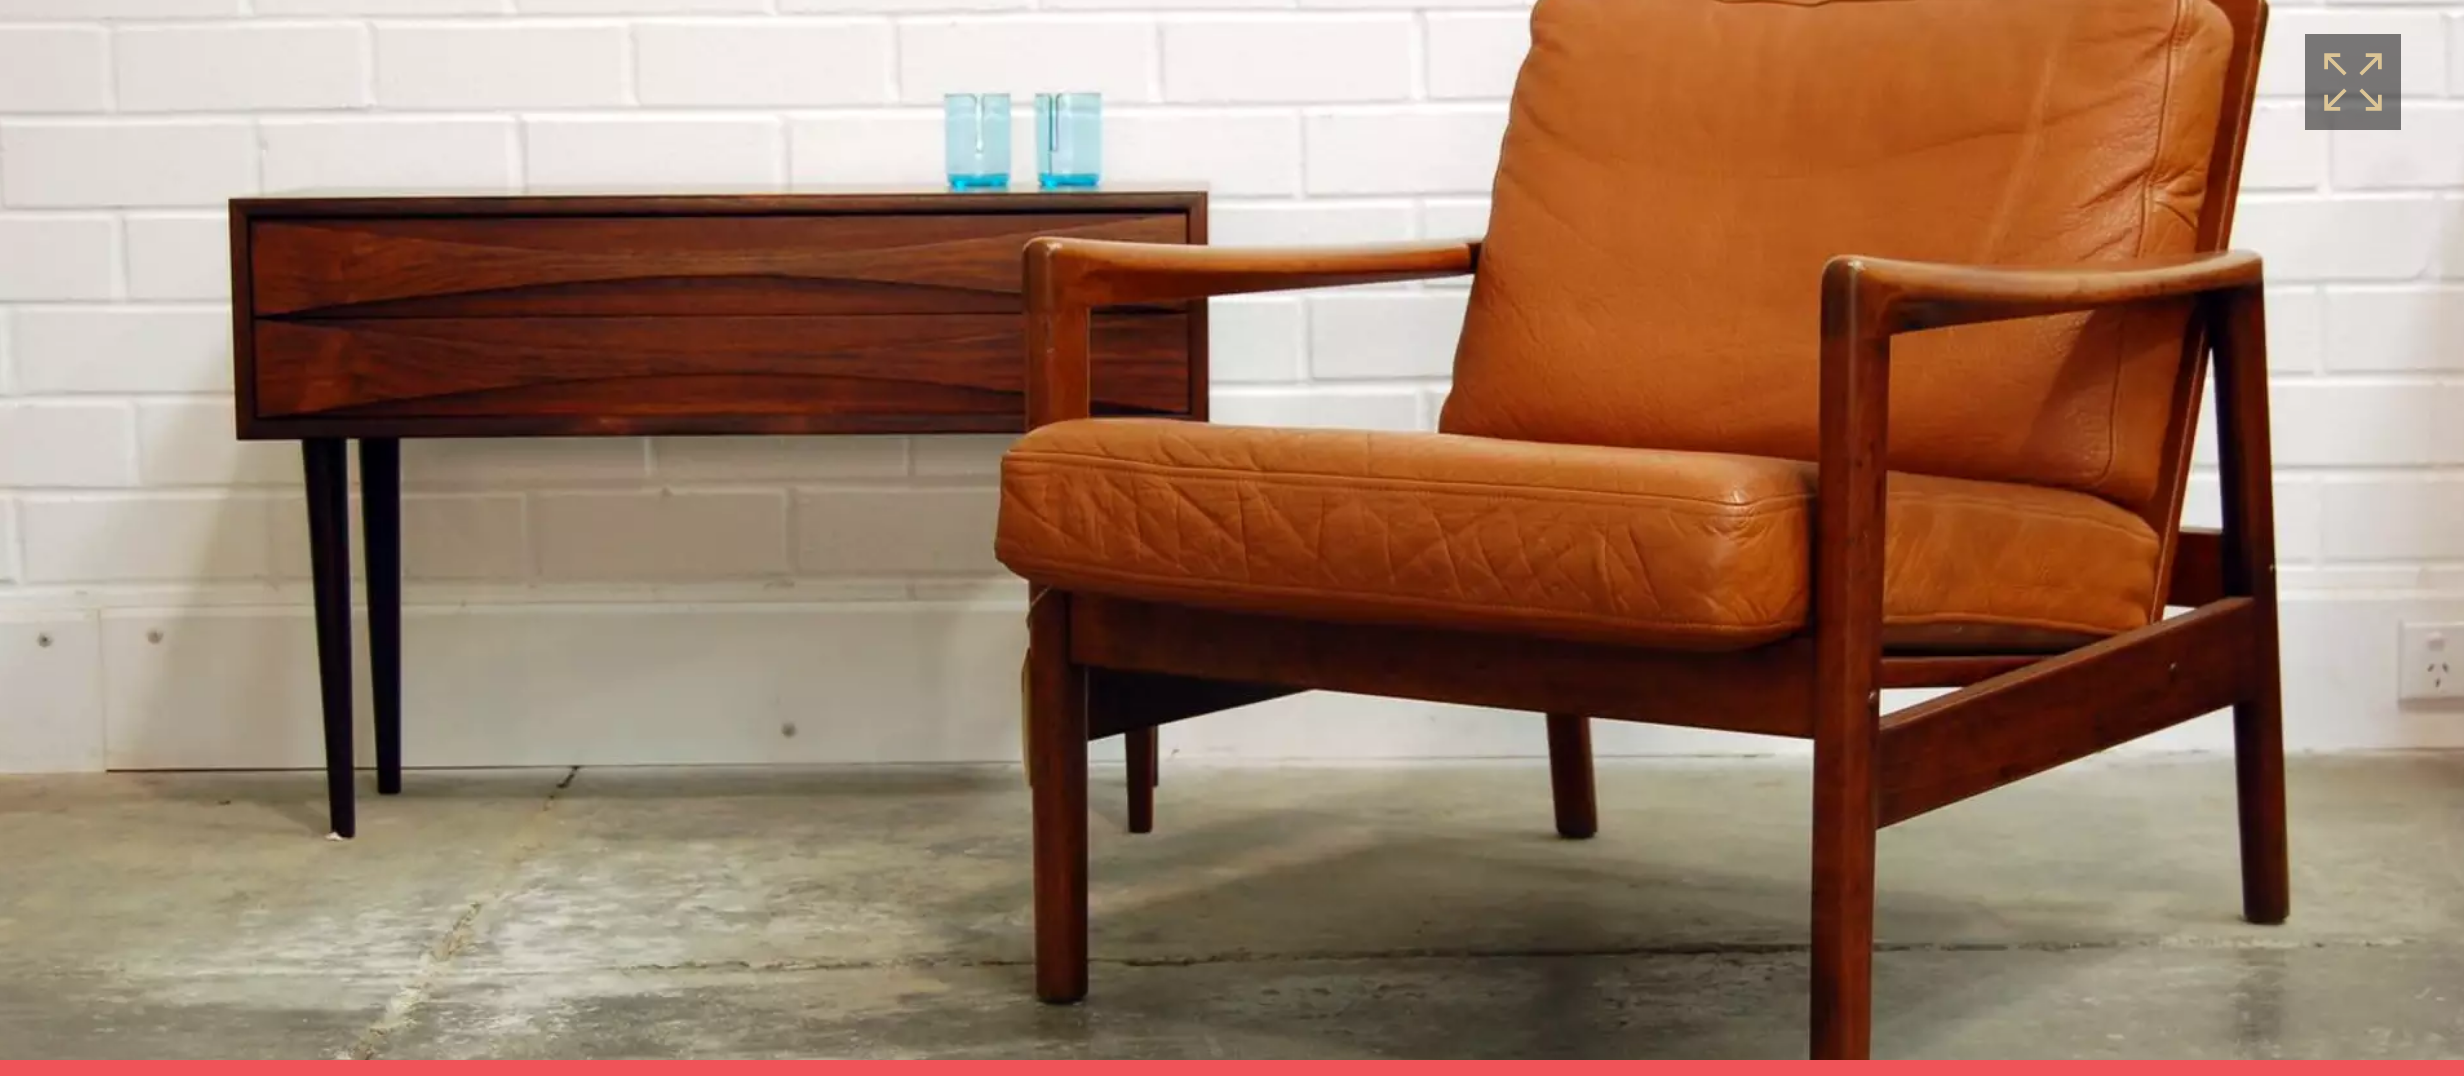 Make your world a little bit more Mad Men with the Sydney specialists in mid-century modern.